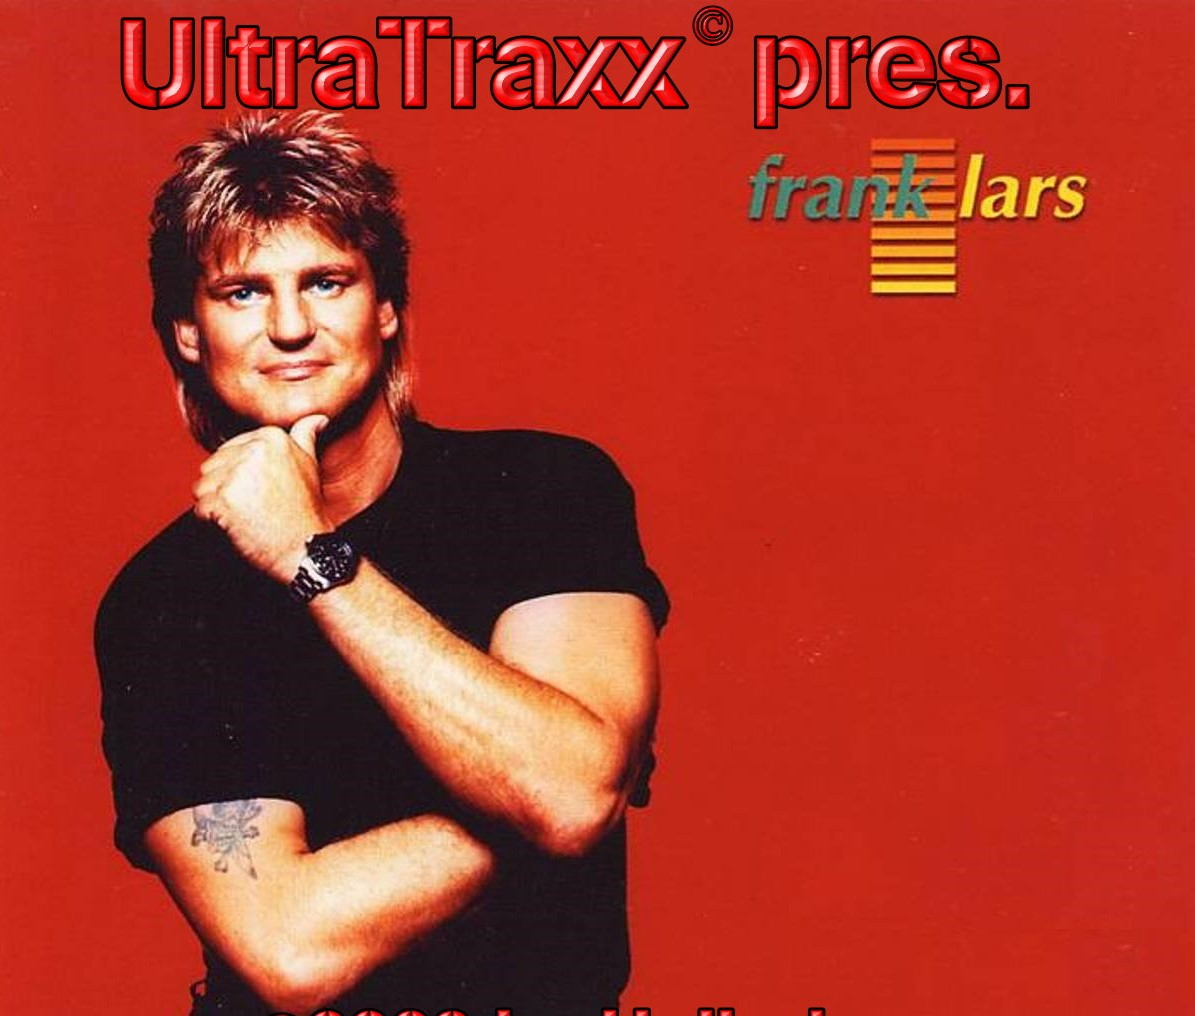 Frank Lars - The UltraTrax Mixes: BACKUP CD